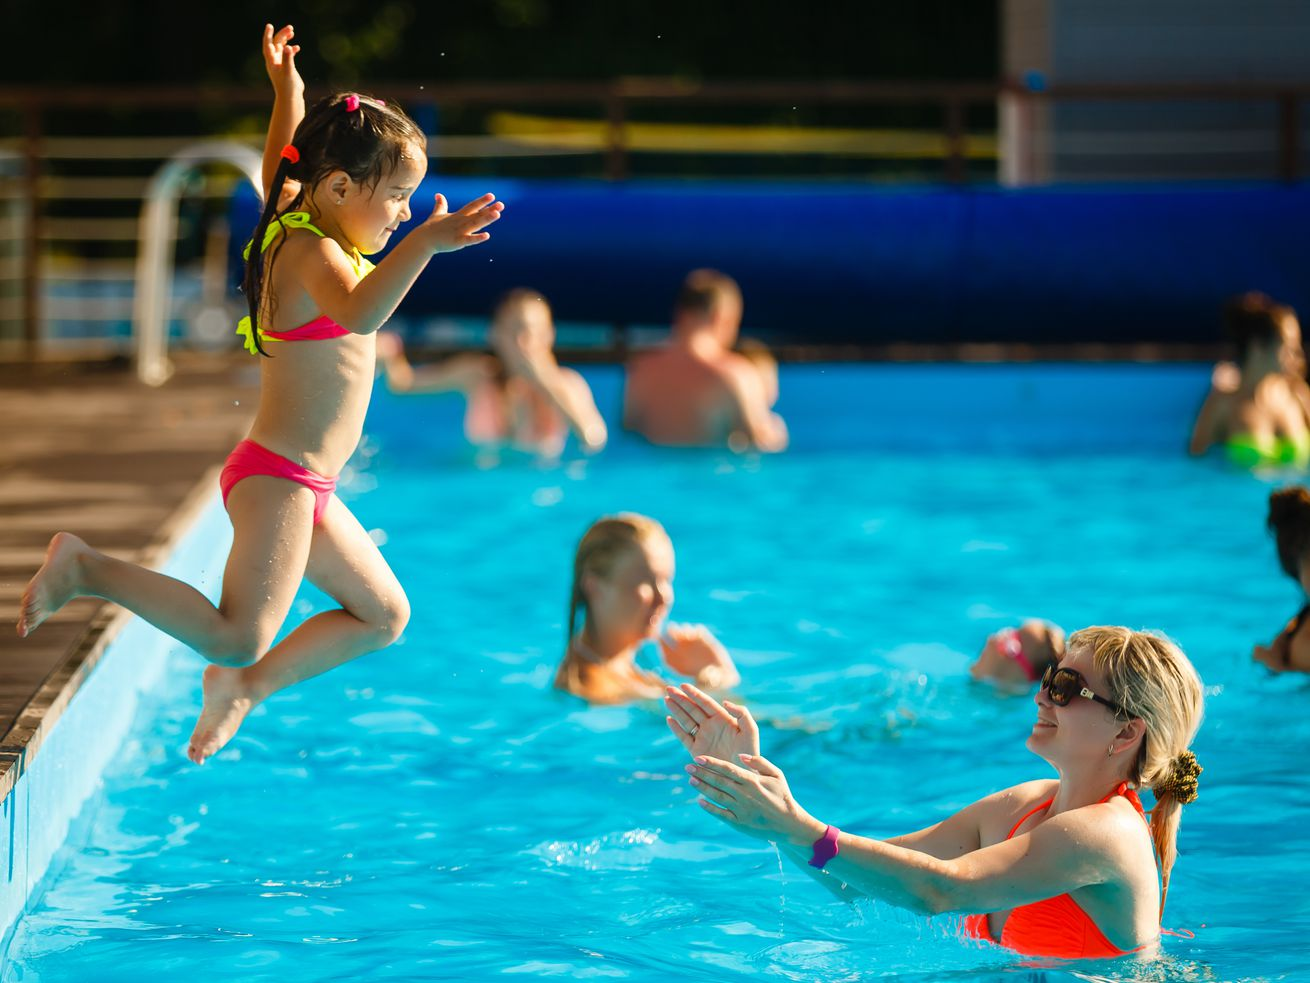 Splashing around in the water, whether at a pool or an ocean shore, is just plain fun. However, not taking the proper safety precautions can lead to tragedy.